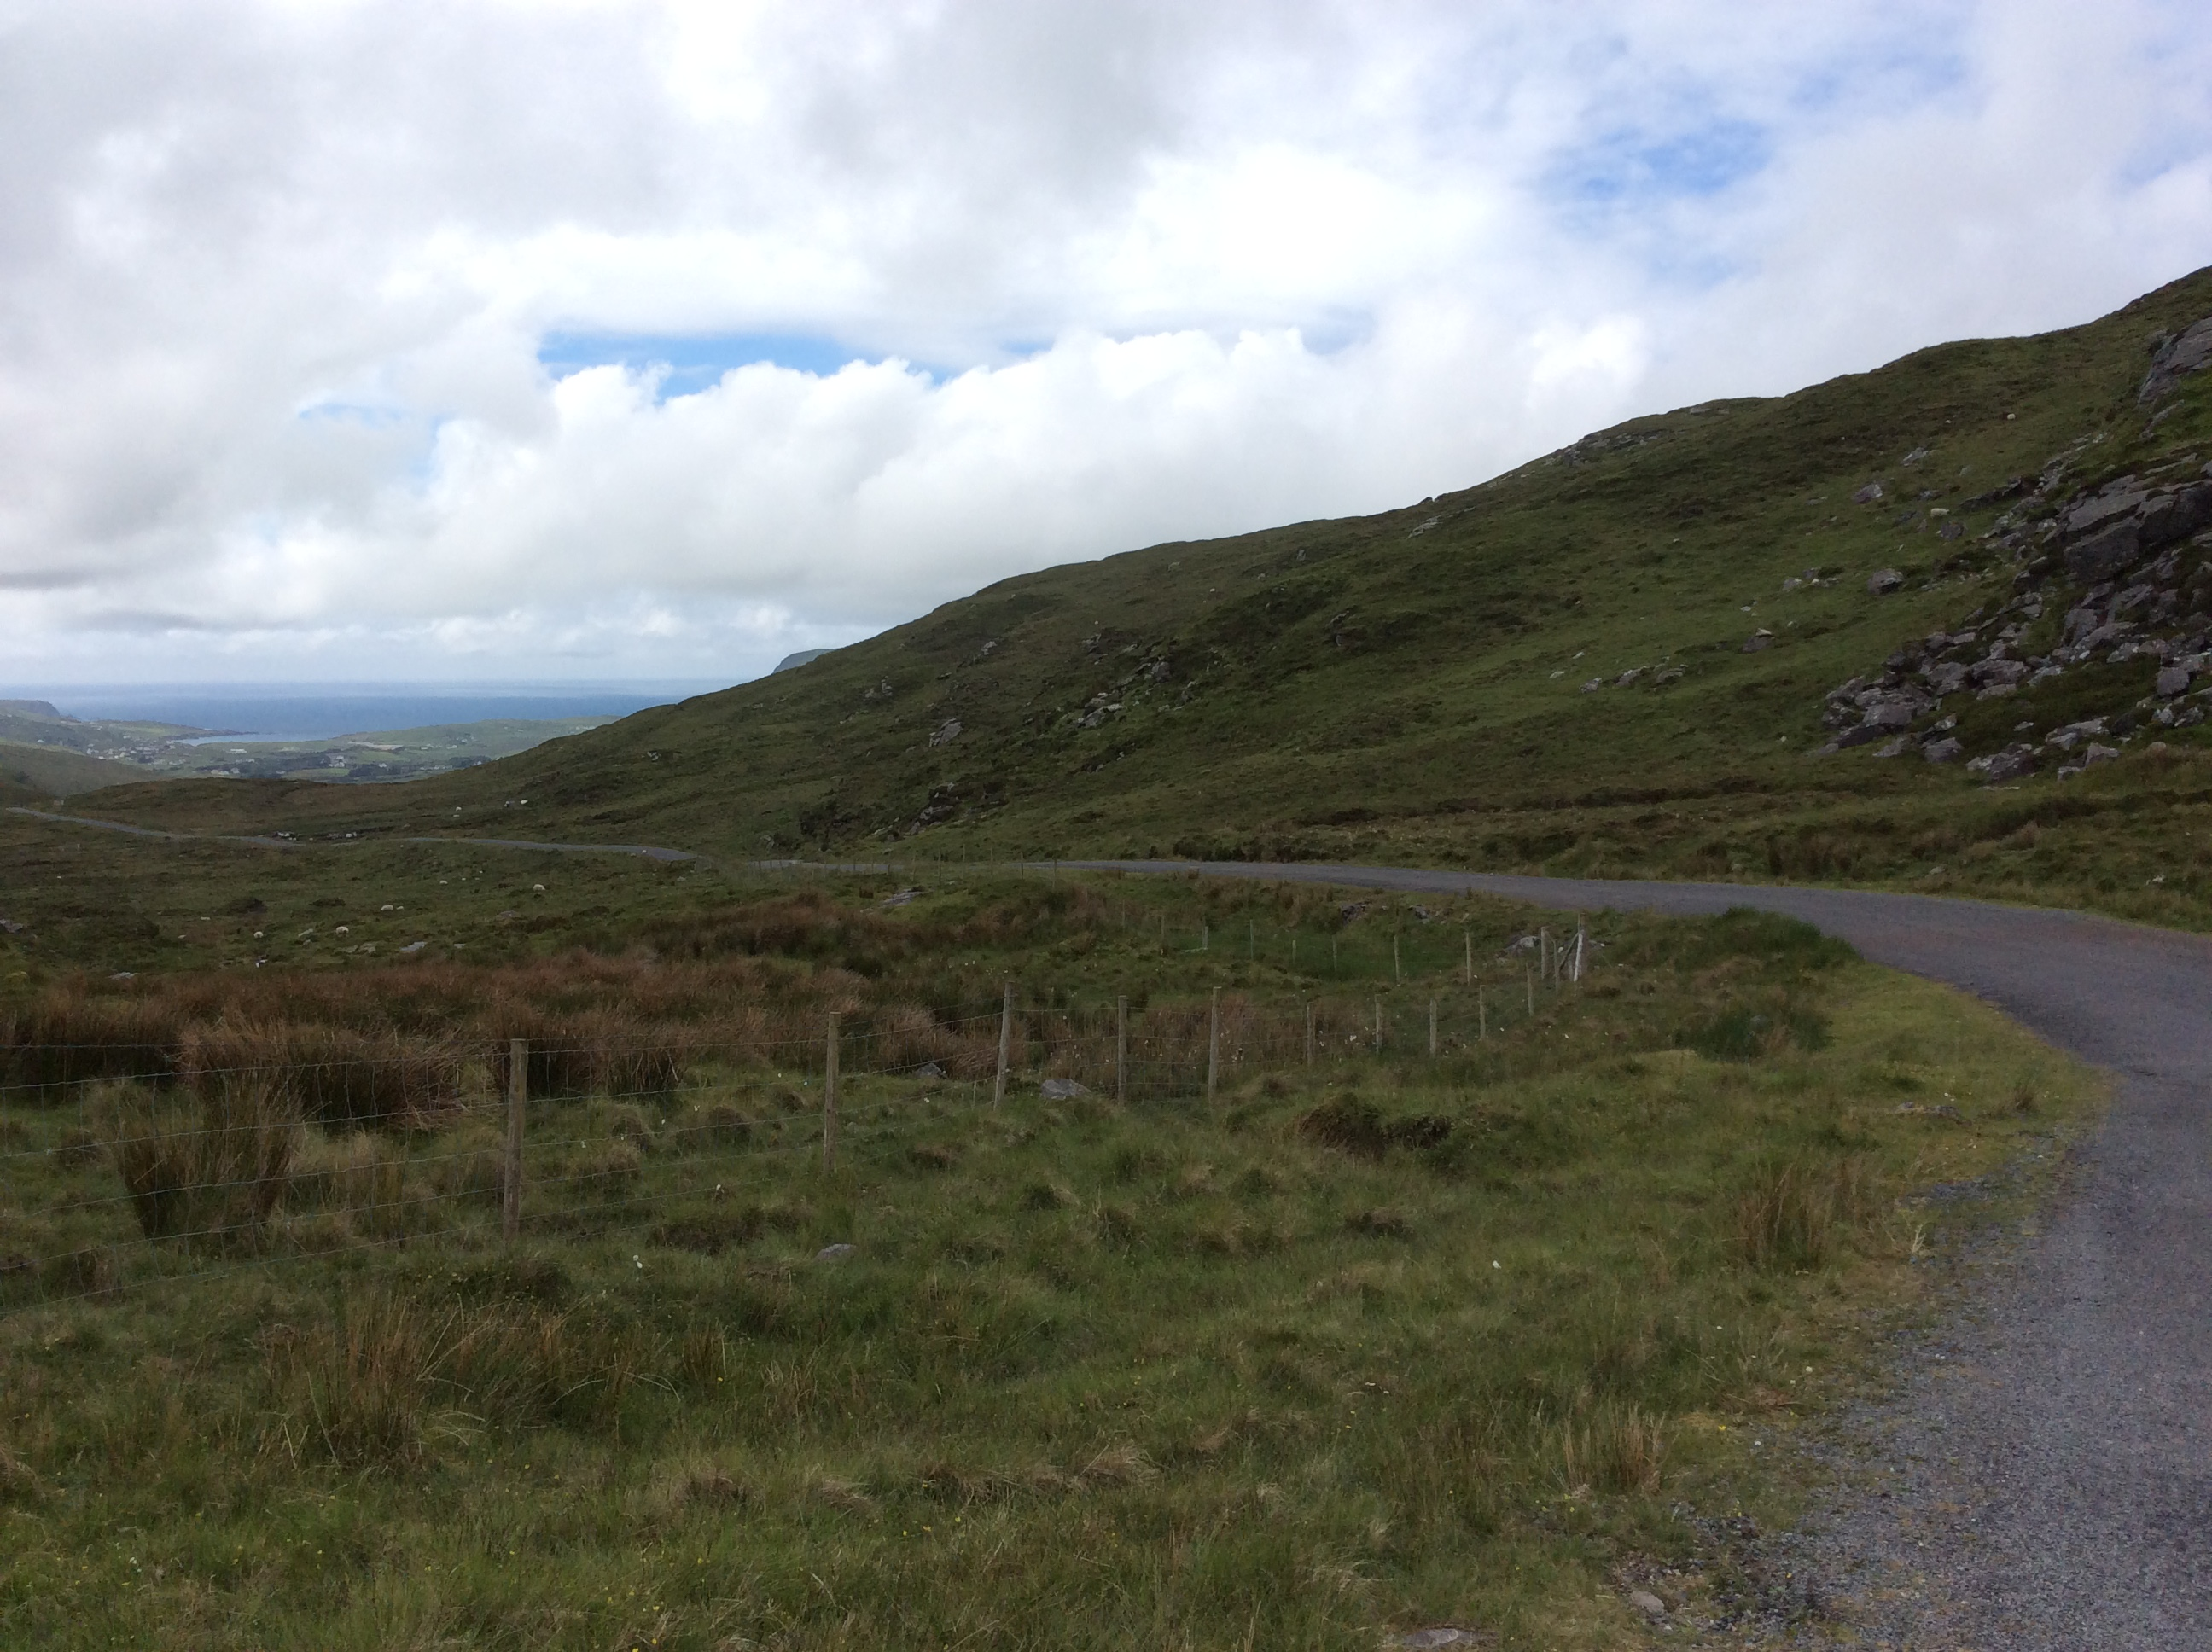 Glencolmcille at the end of the valley